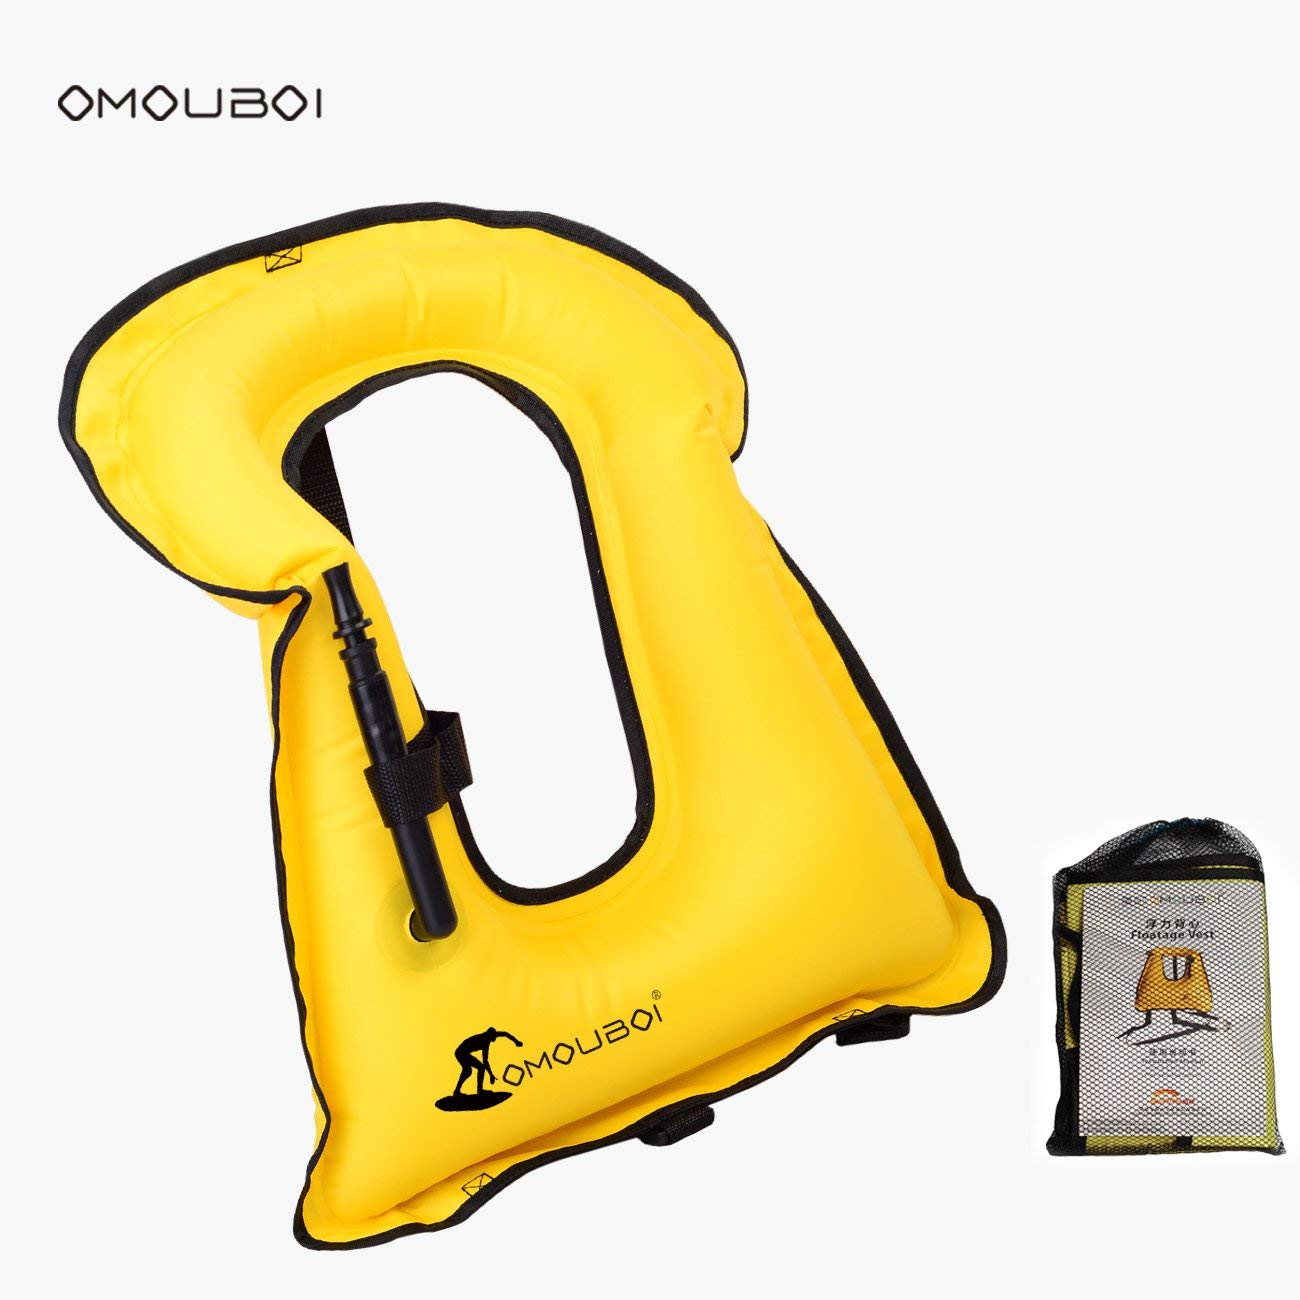 SUNNY LIFE JACKETS OMOUBOI Unisex Adult Portable Inflatable Canvas Life Jacket Snorkel Vest For Diving Safety